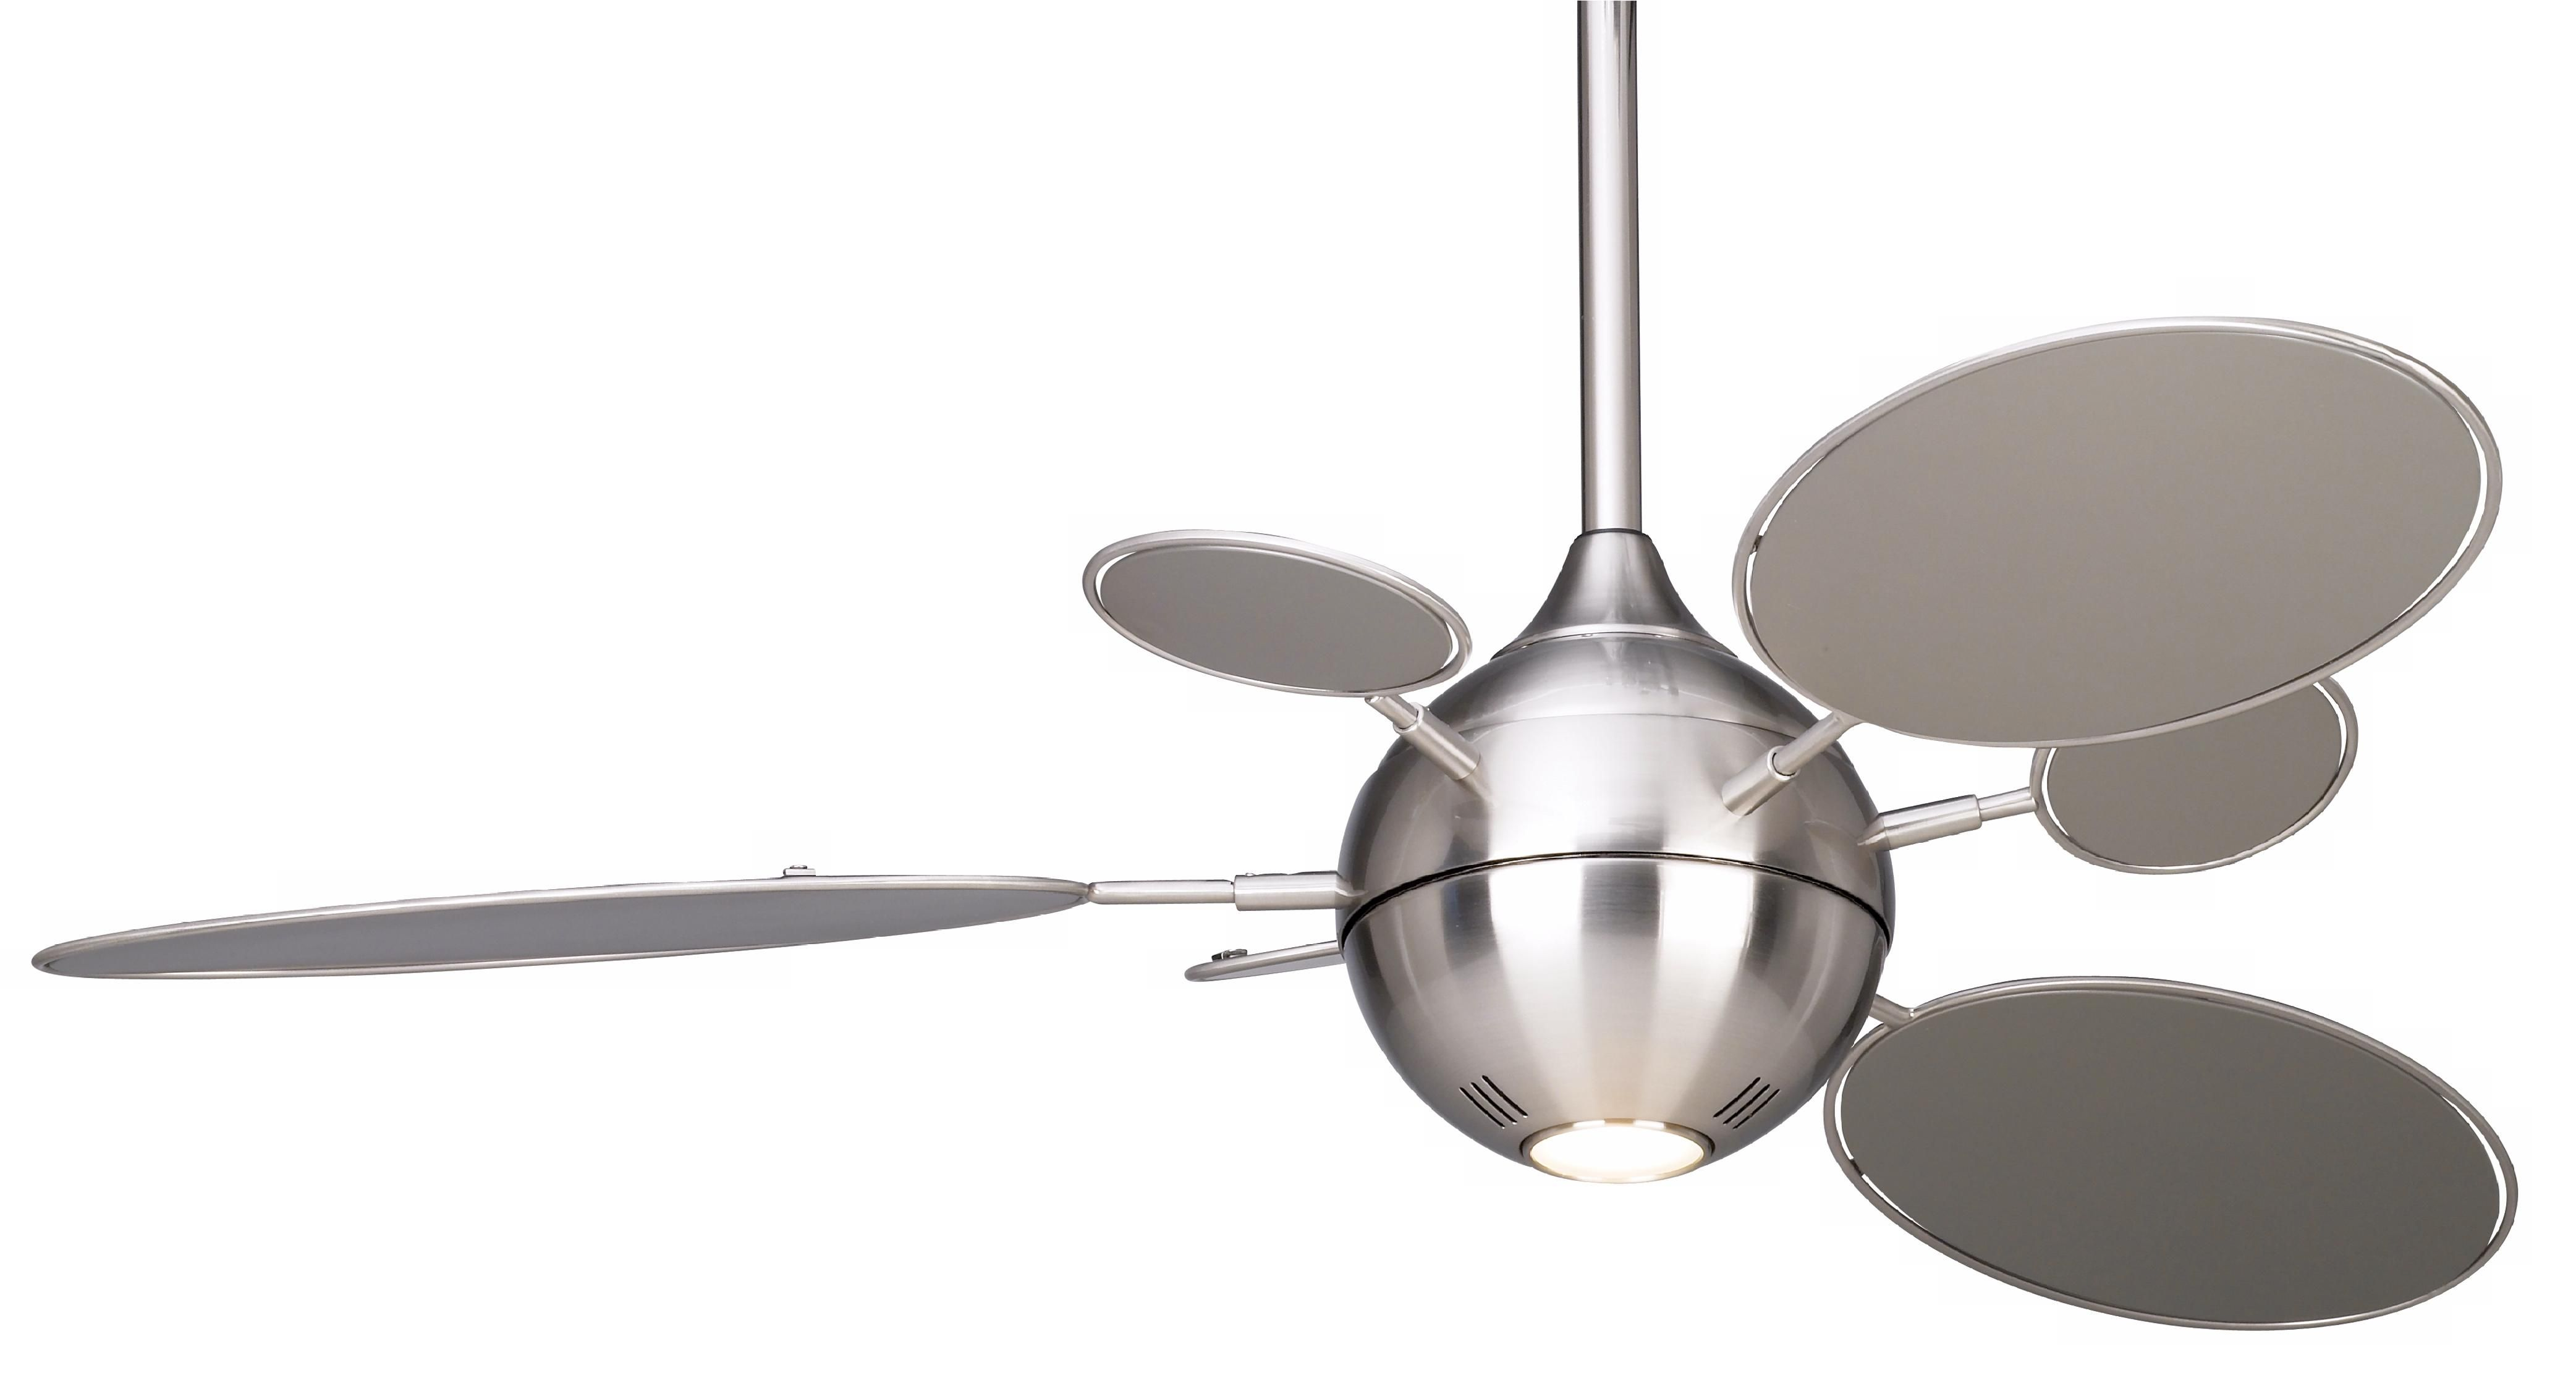 54 Minka Aire Cirque Brushed Nickel Ceiling Fan Brushed Nickel